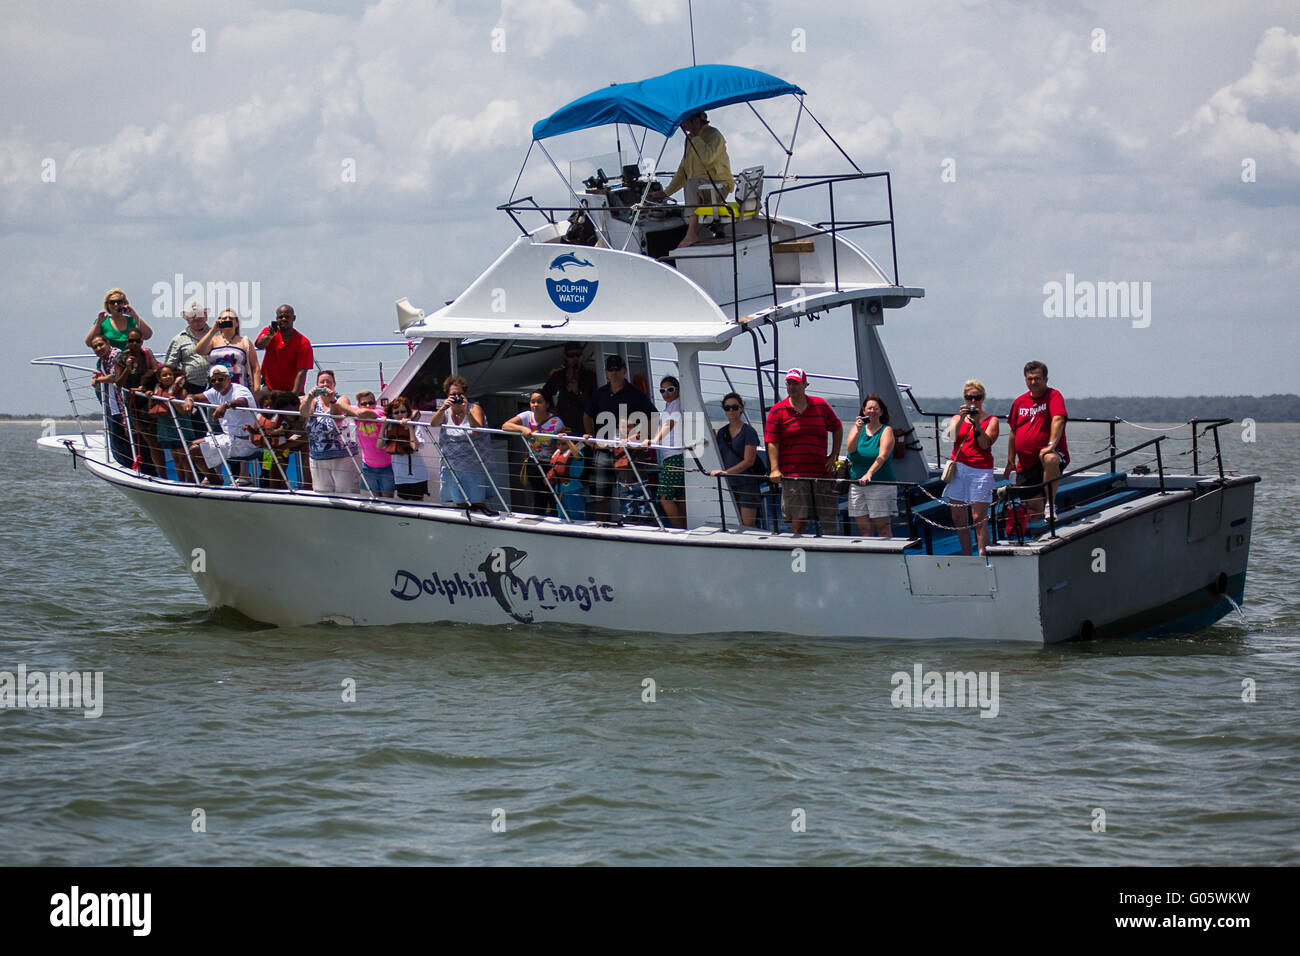 Tourist Boat for Dolphin Watching - Stock Image